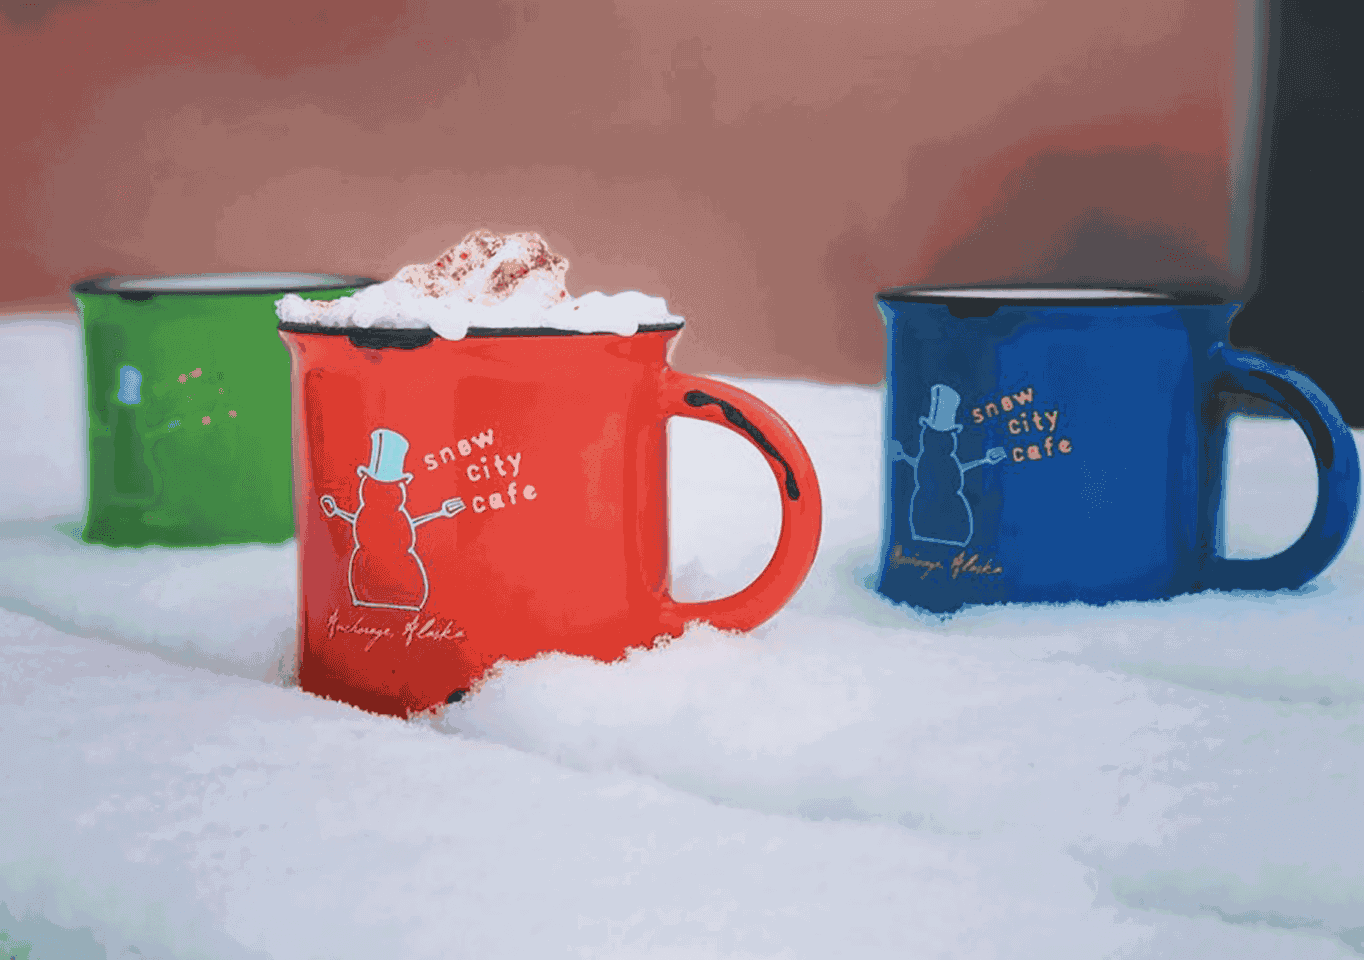 Snow City Cafe Mugs